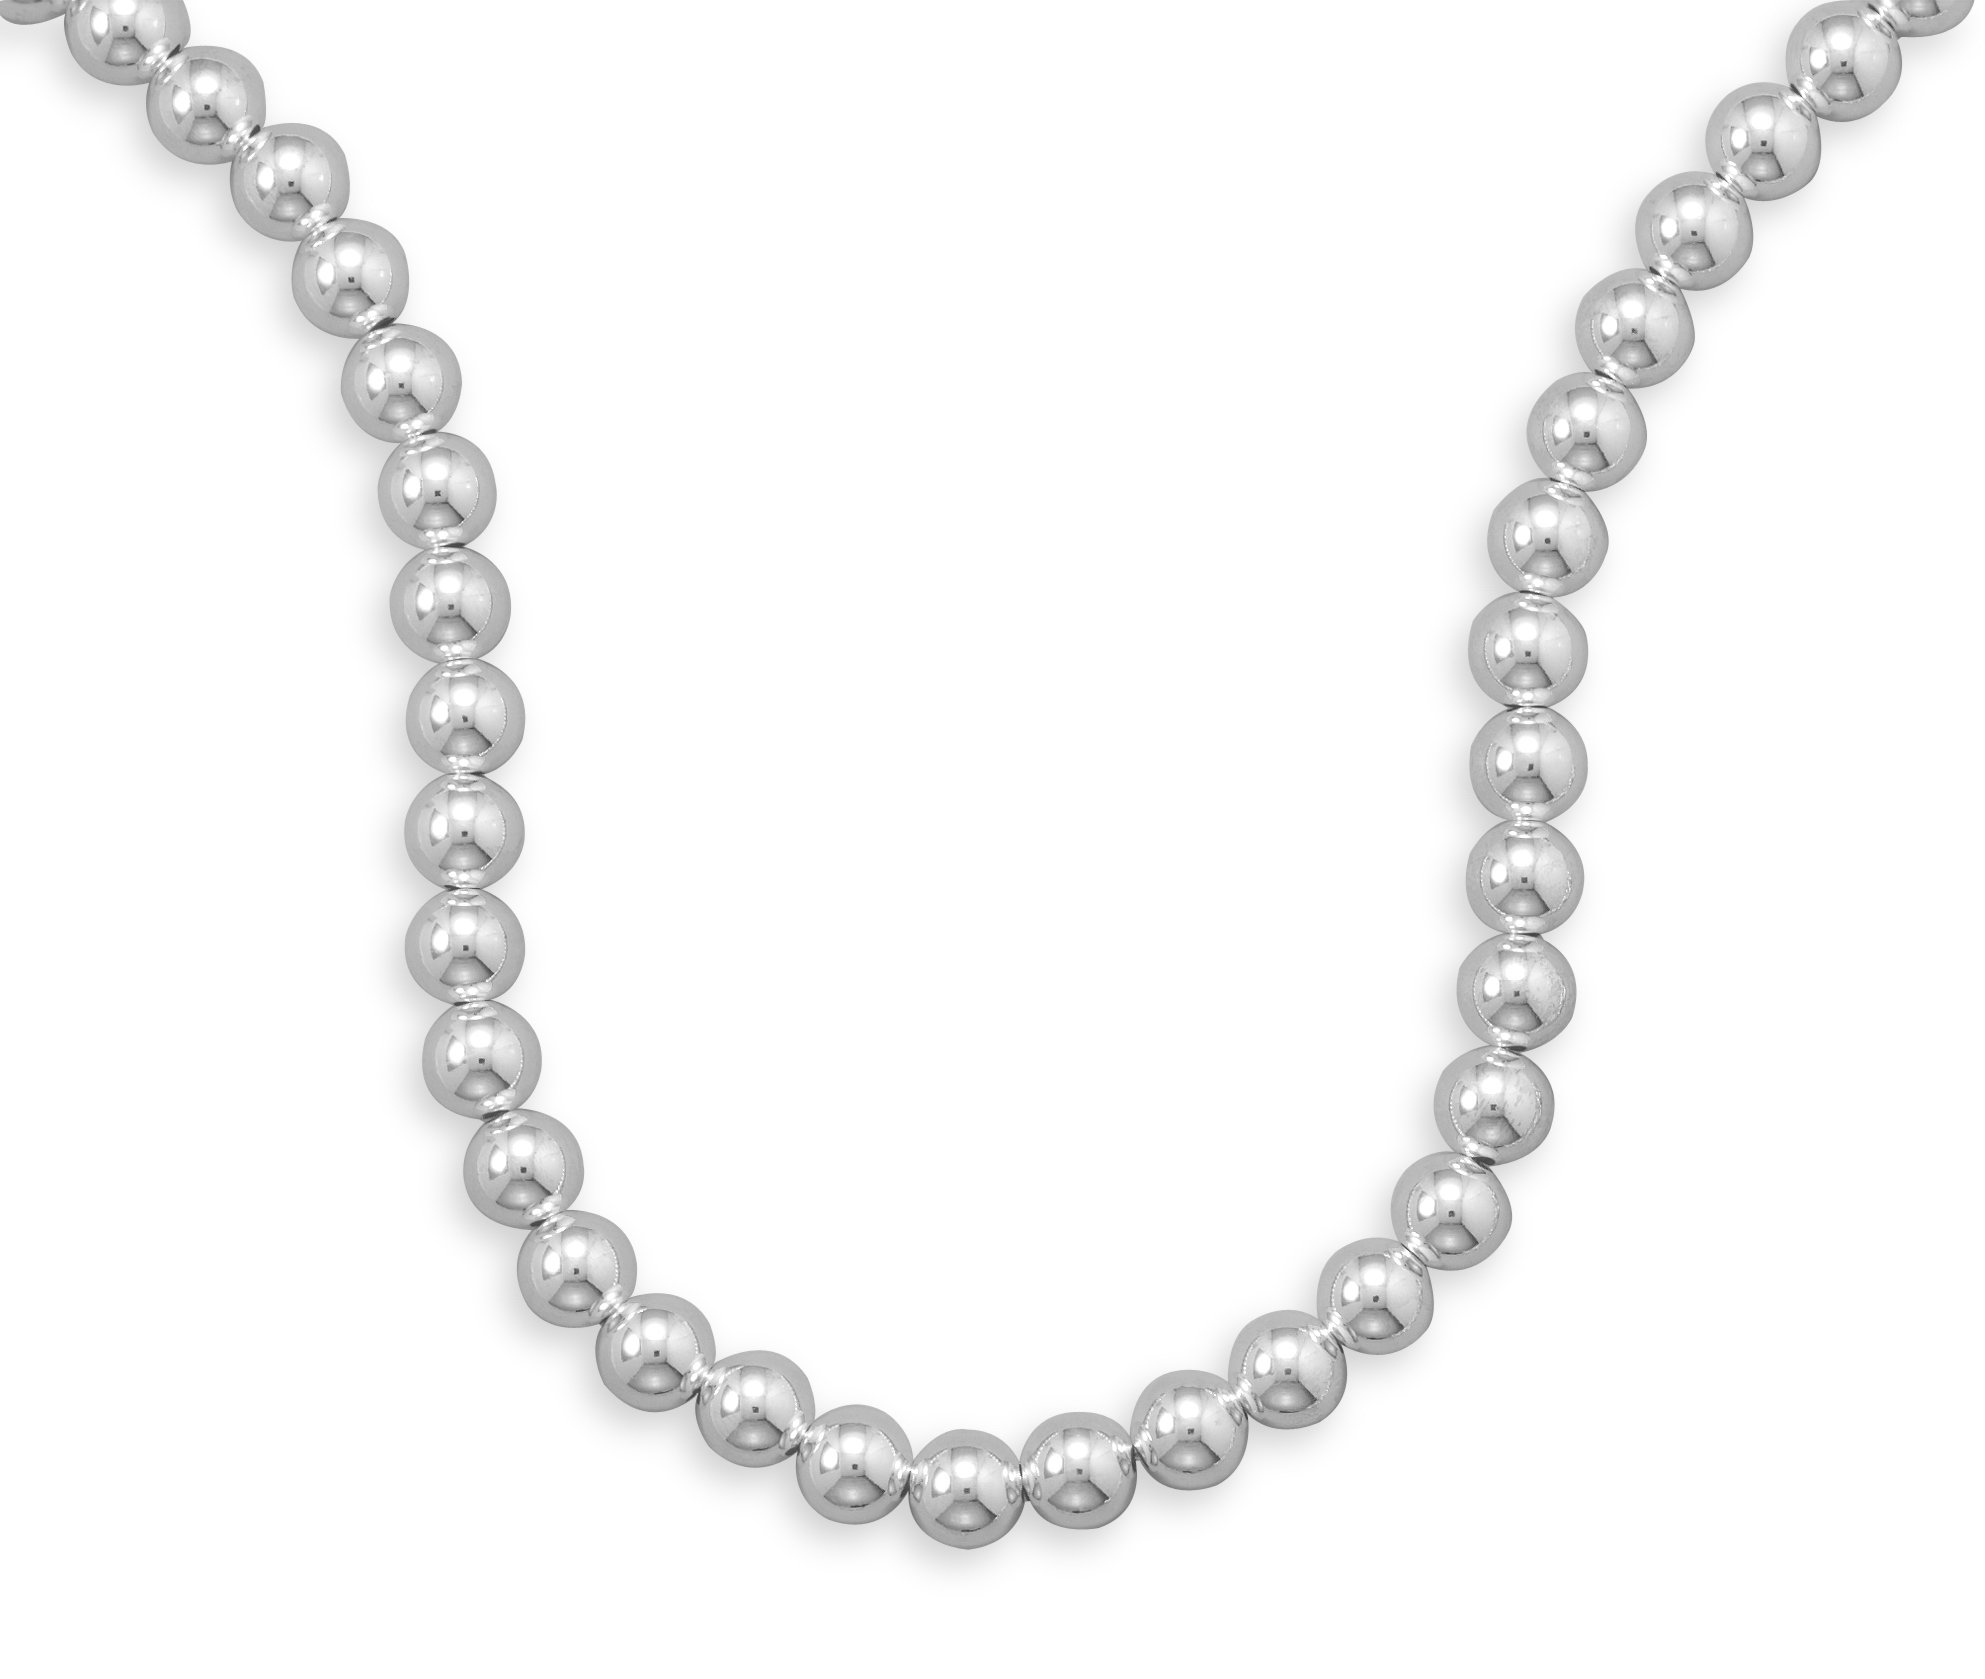 Sterling Silver Necklace, Lobster Clasp, 16 inch long, 10mm Bead/Ball